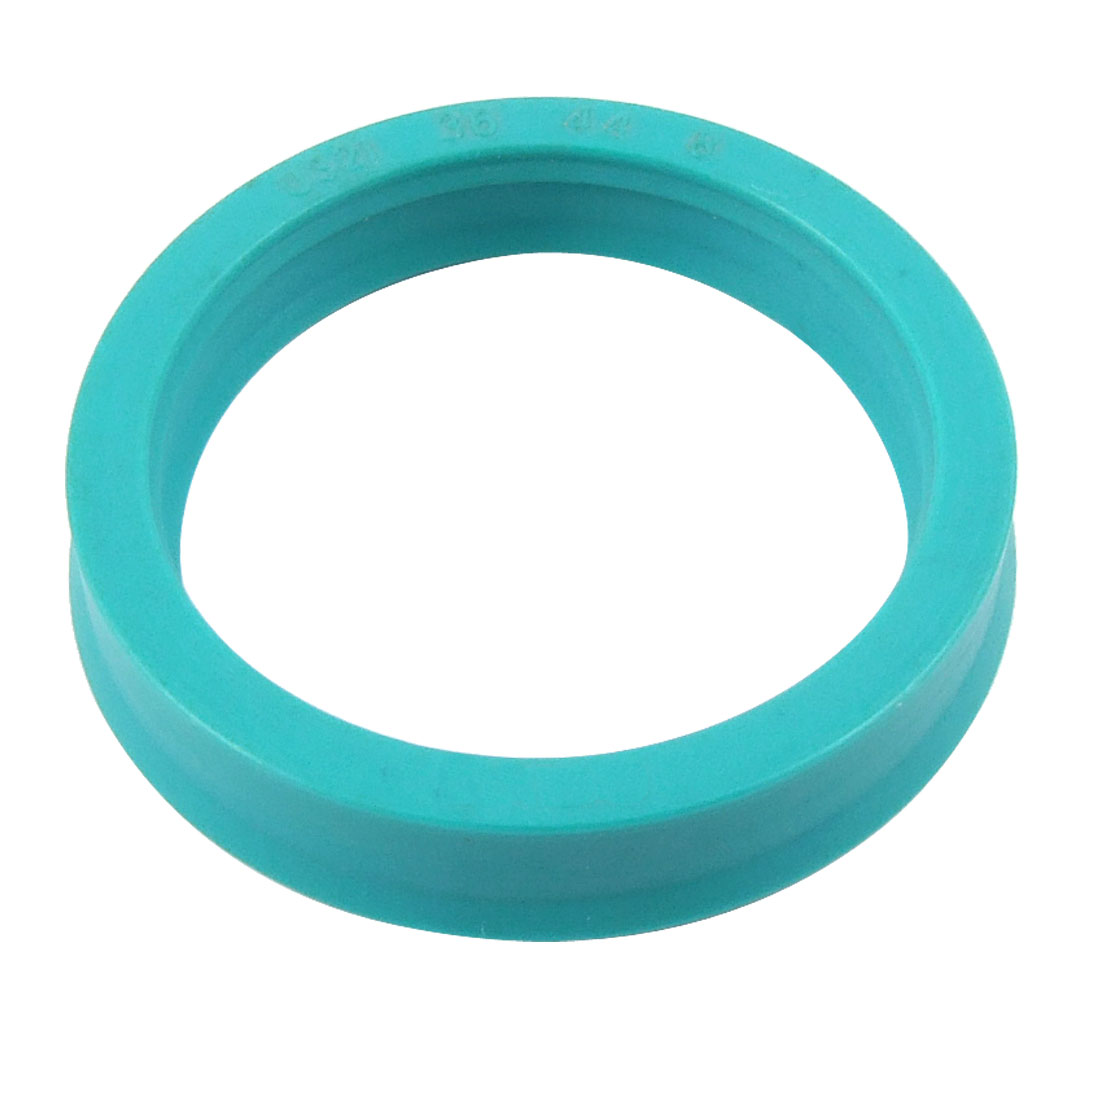 U32i 36mm x 44mm x 8mm Metric Single Lipped Polyurethane PU Oil Seal Ring